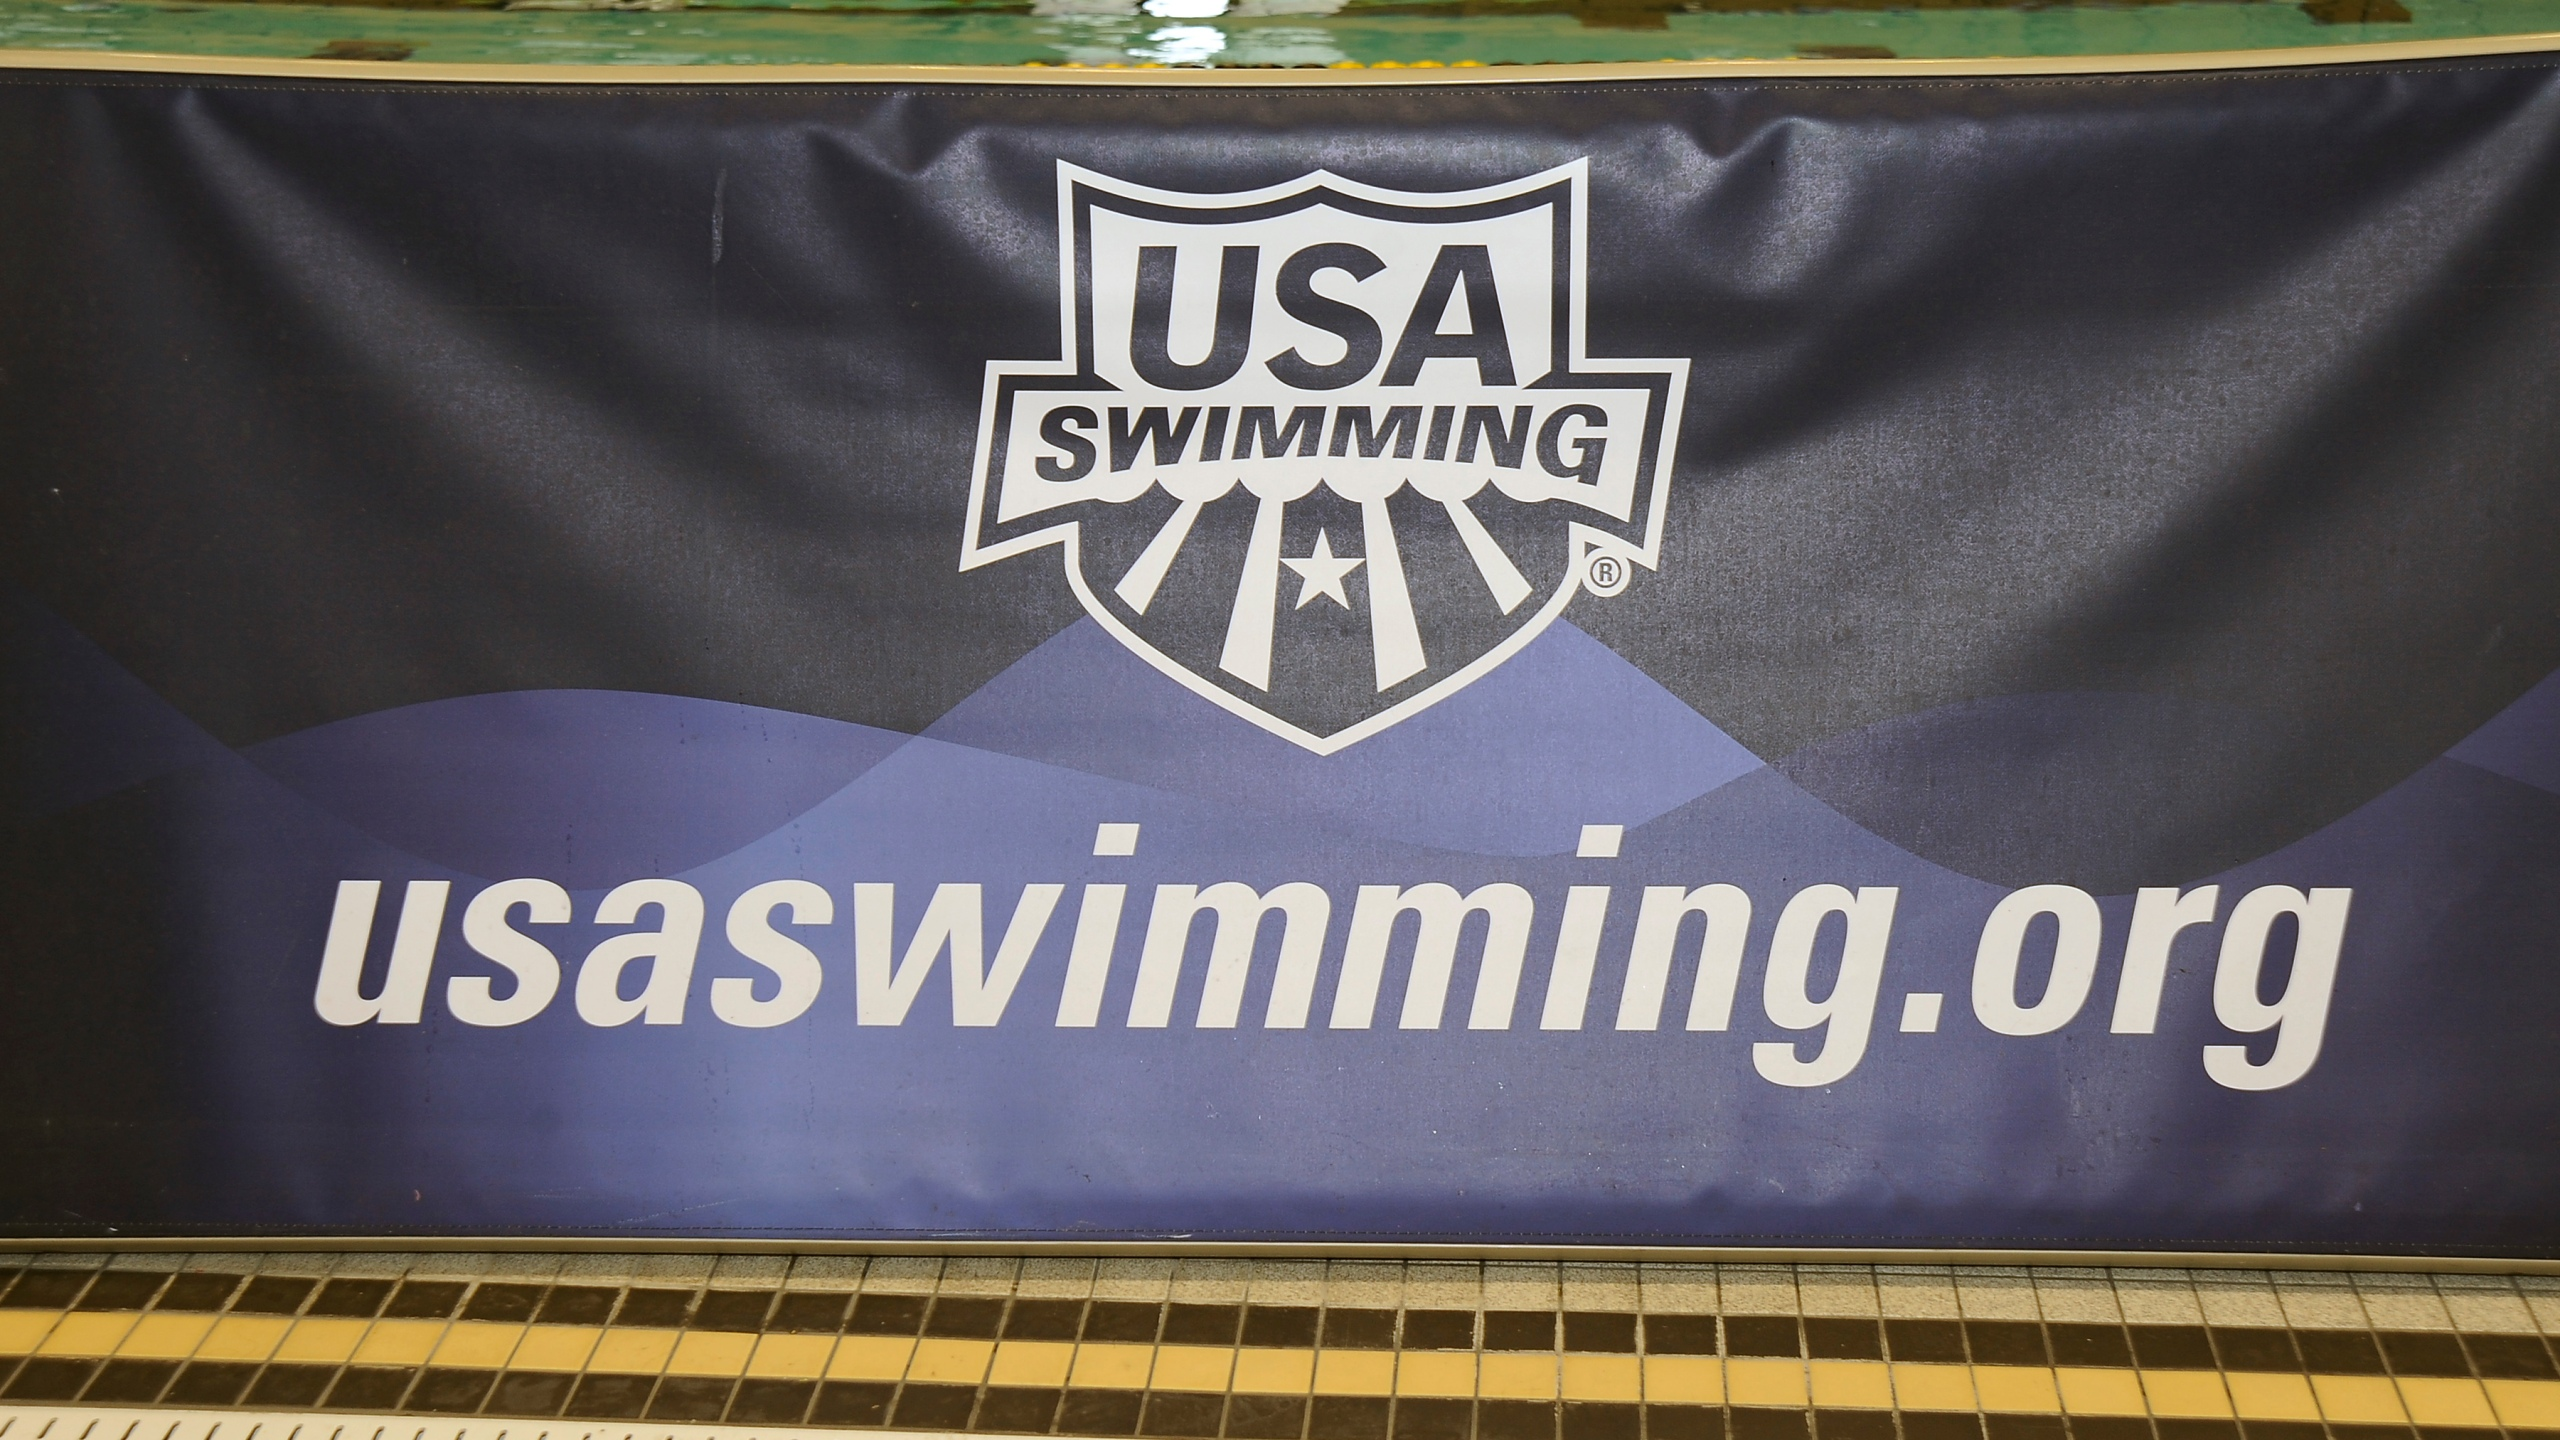 A banner for the USA Swimming foundation is displayed at the Missouri Grand Prix on February 15, 2010 at the Mizzou Aquatic Center in Columbia, Missouri. (G. Newman Lowrance/Getty Images)